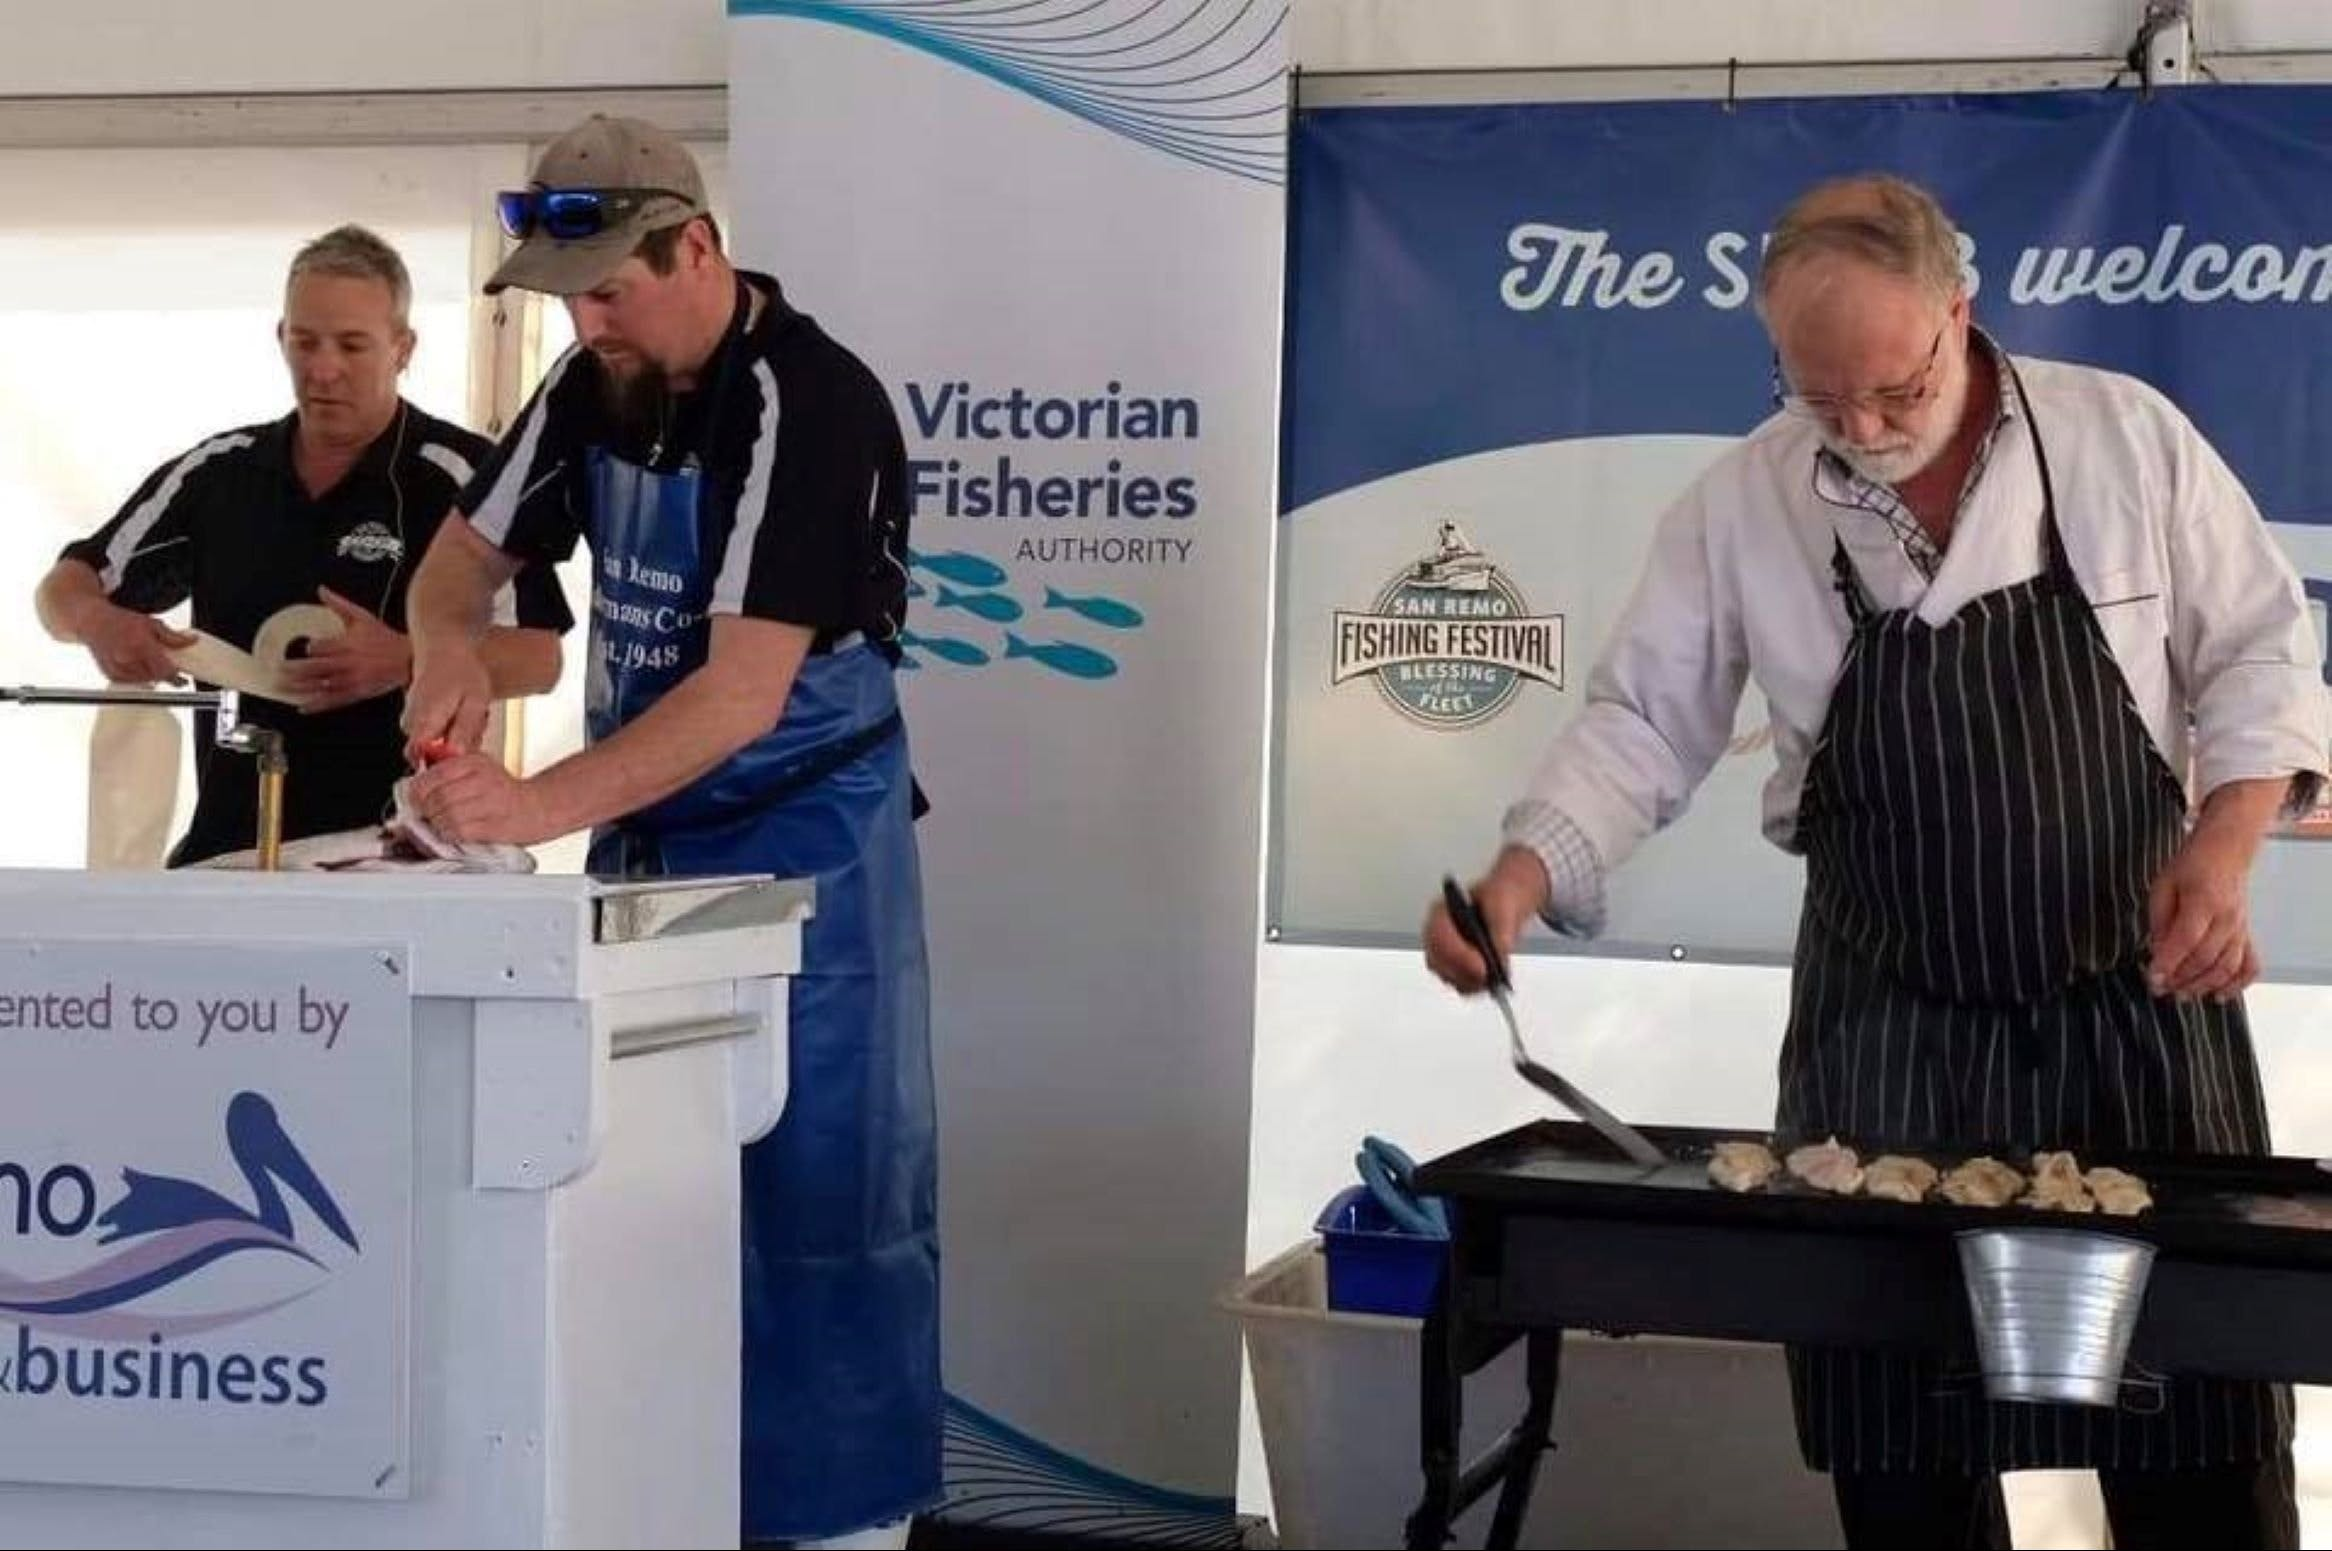 San Remo Fishing Festival - Sunshine Coast Tourism